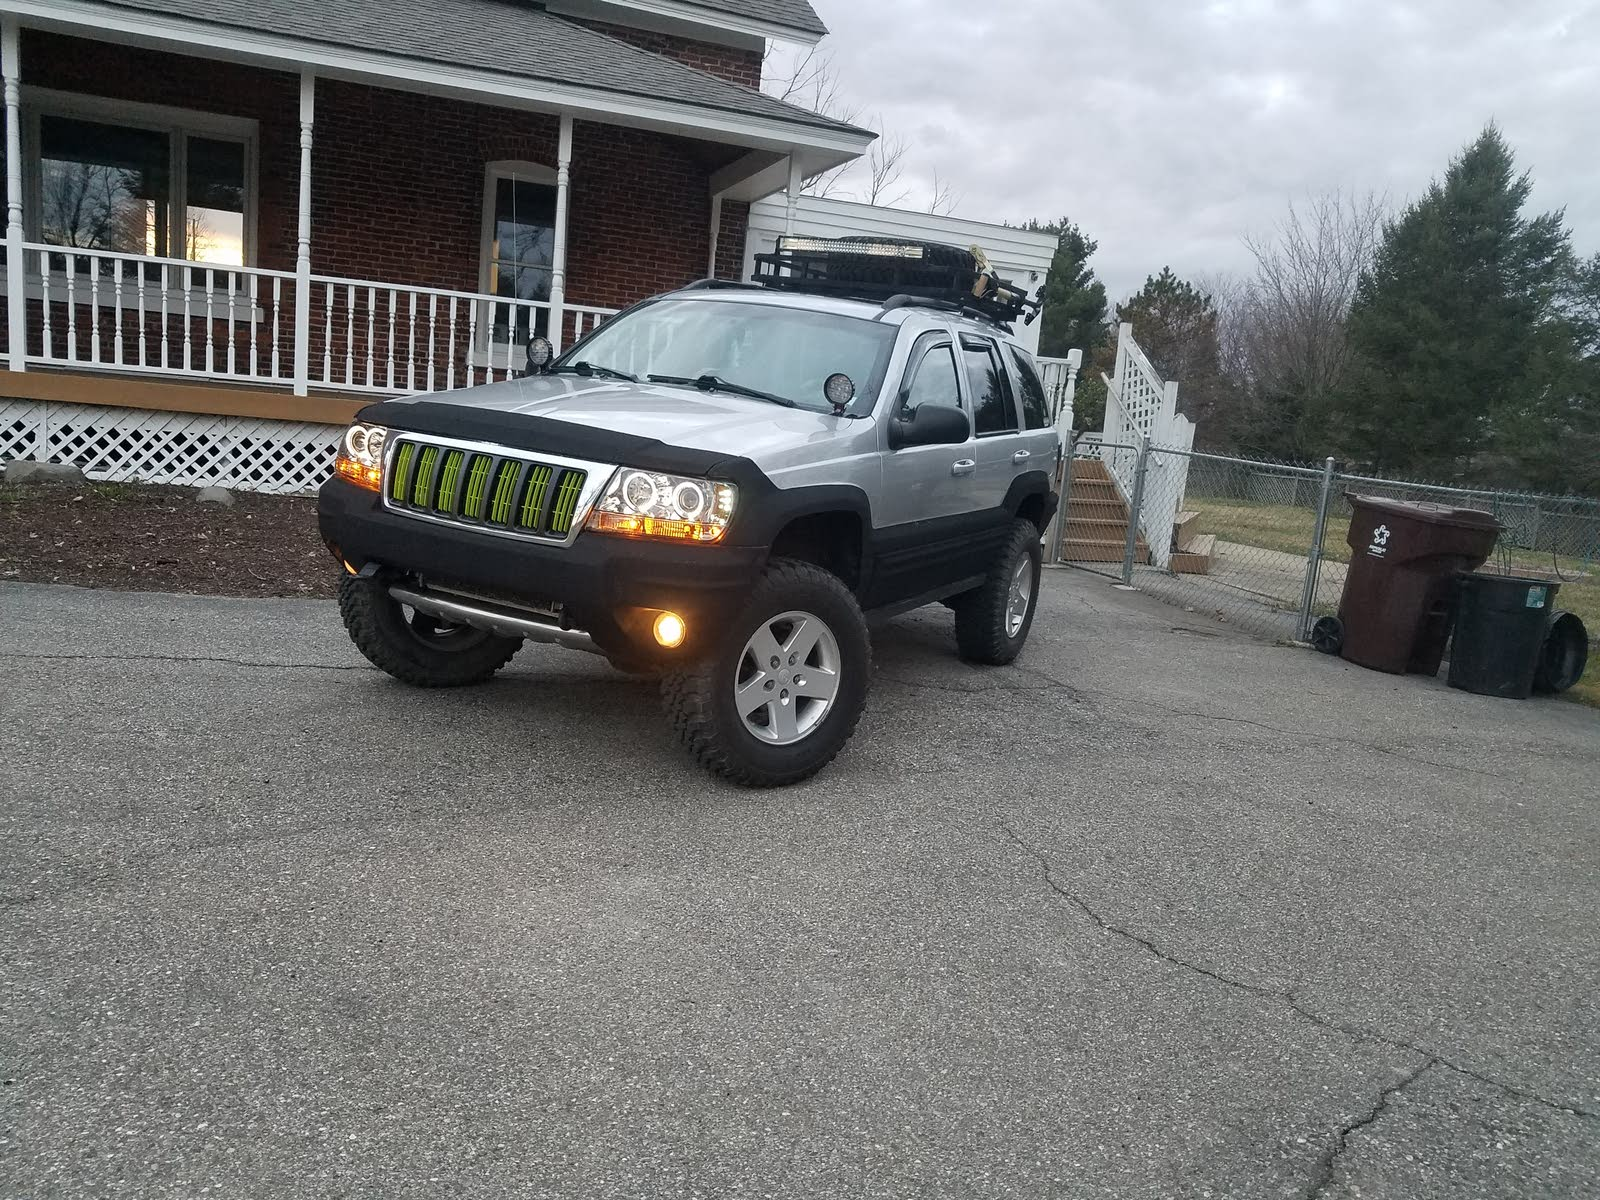 hight resolution of  2004 jeep grand cherokee limited and it says number 27 in the fuse box is rear fog lights but i don t have rear fog lights and numbers 27 is